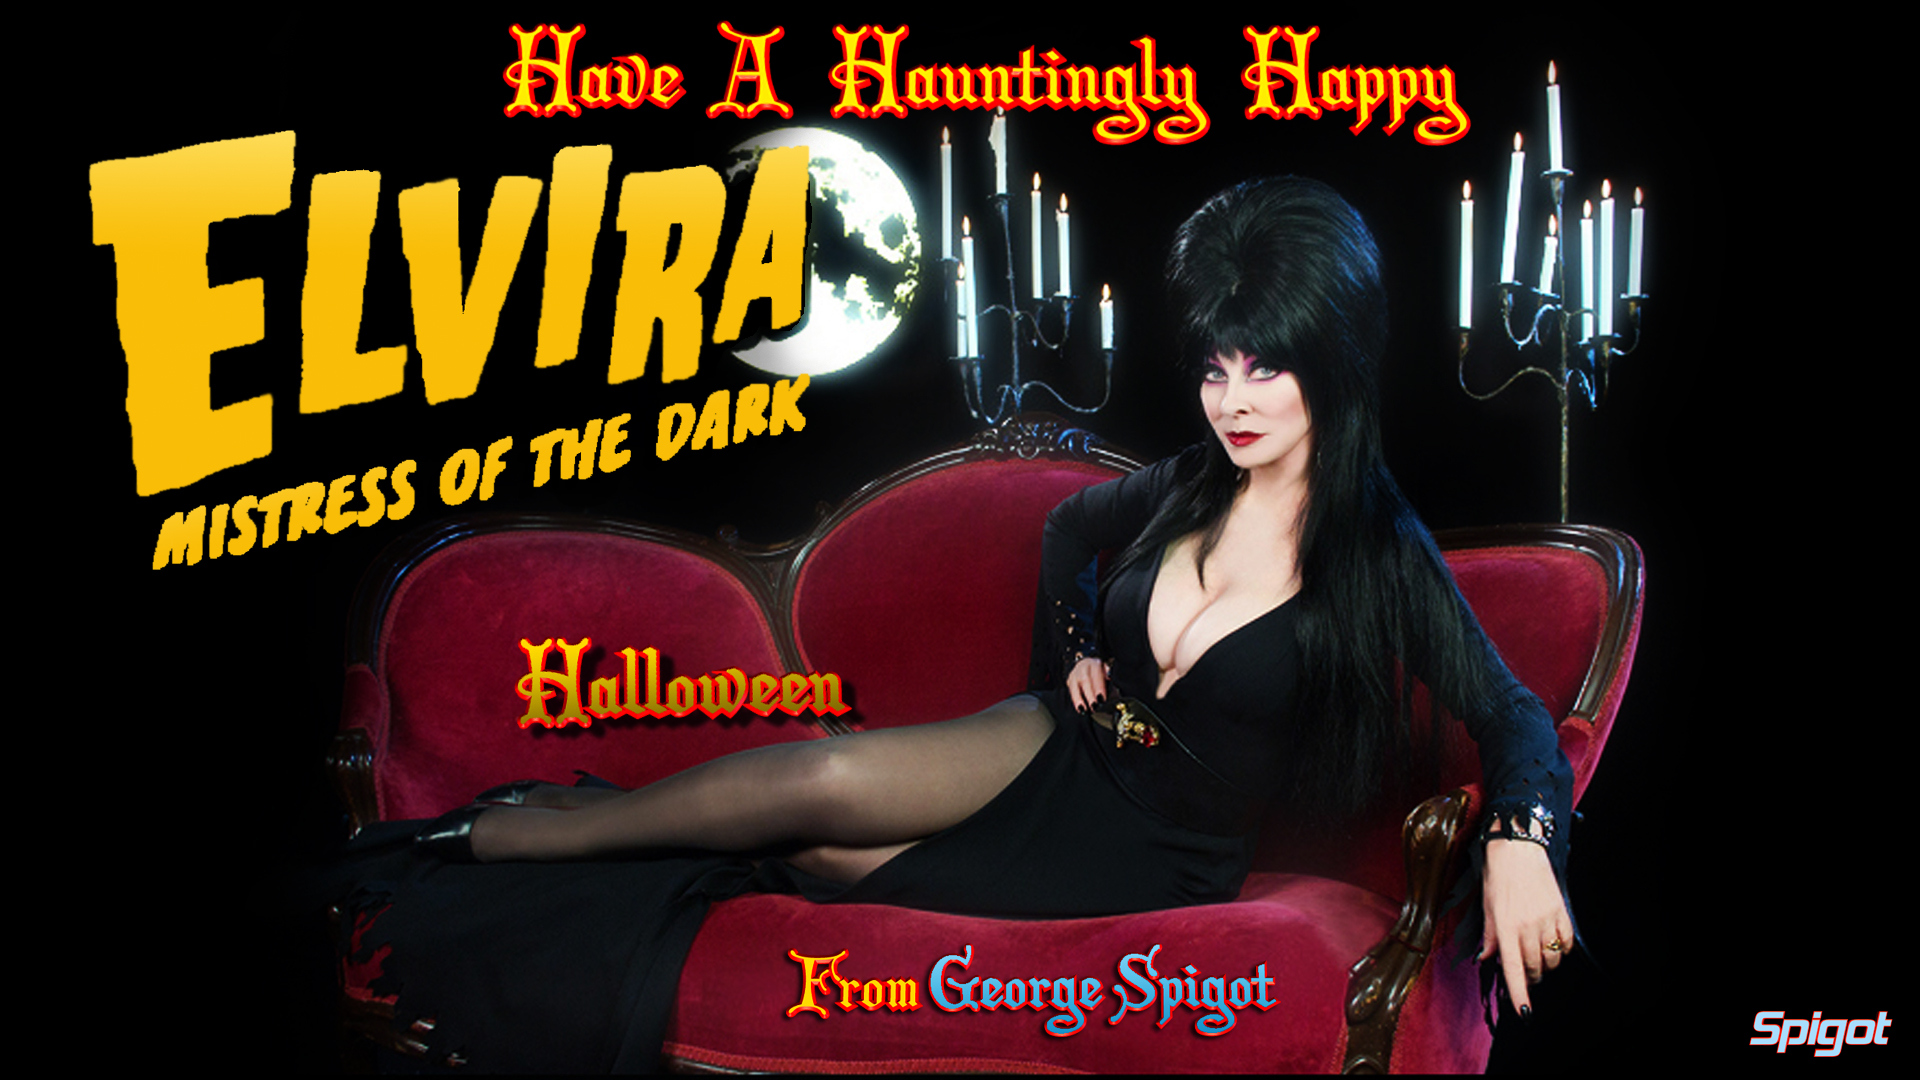 Elvira Mistress of the Dark 1920x1080